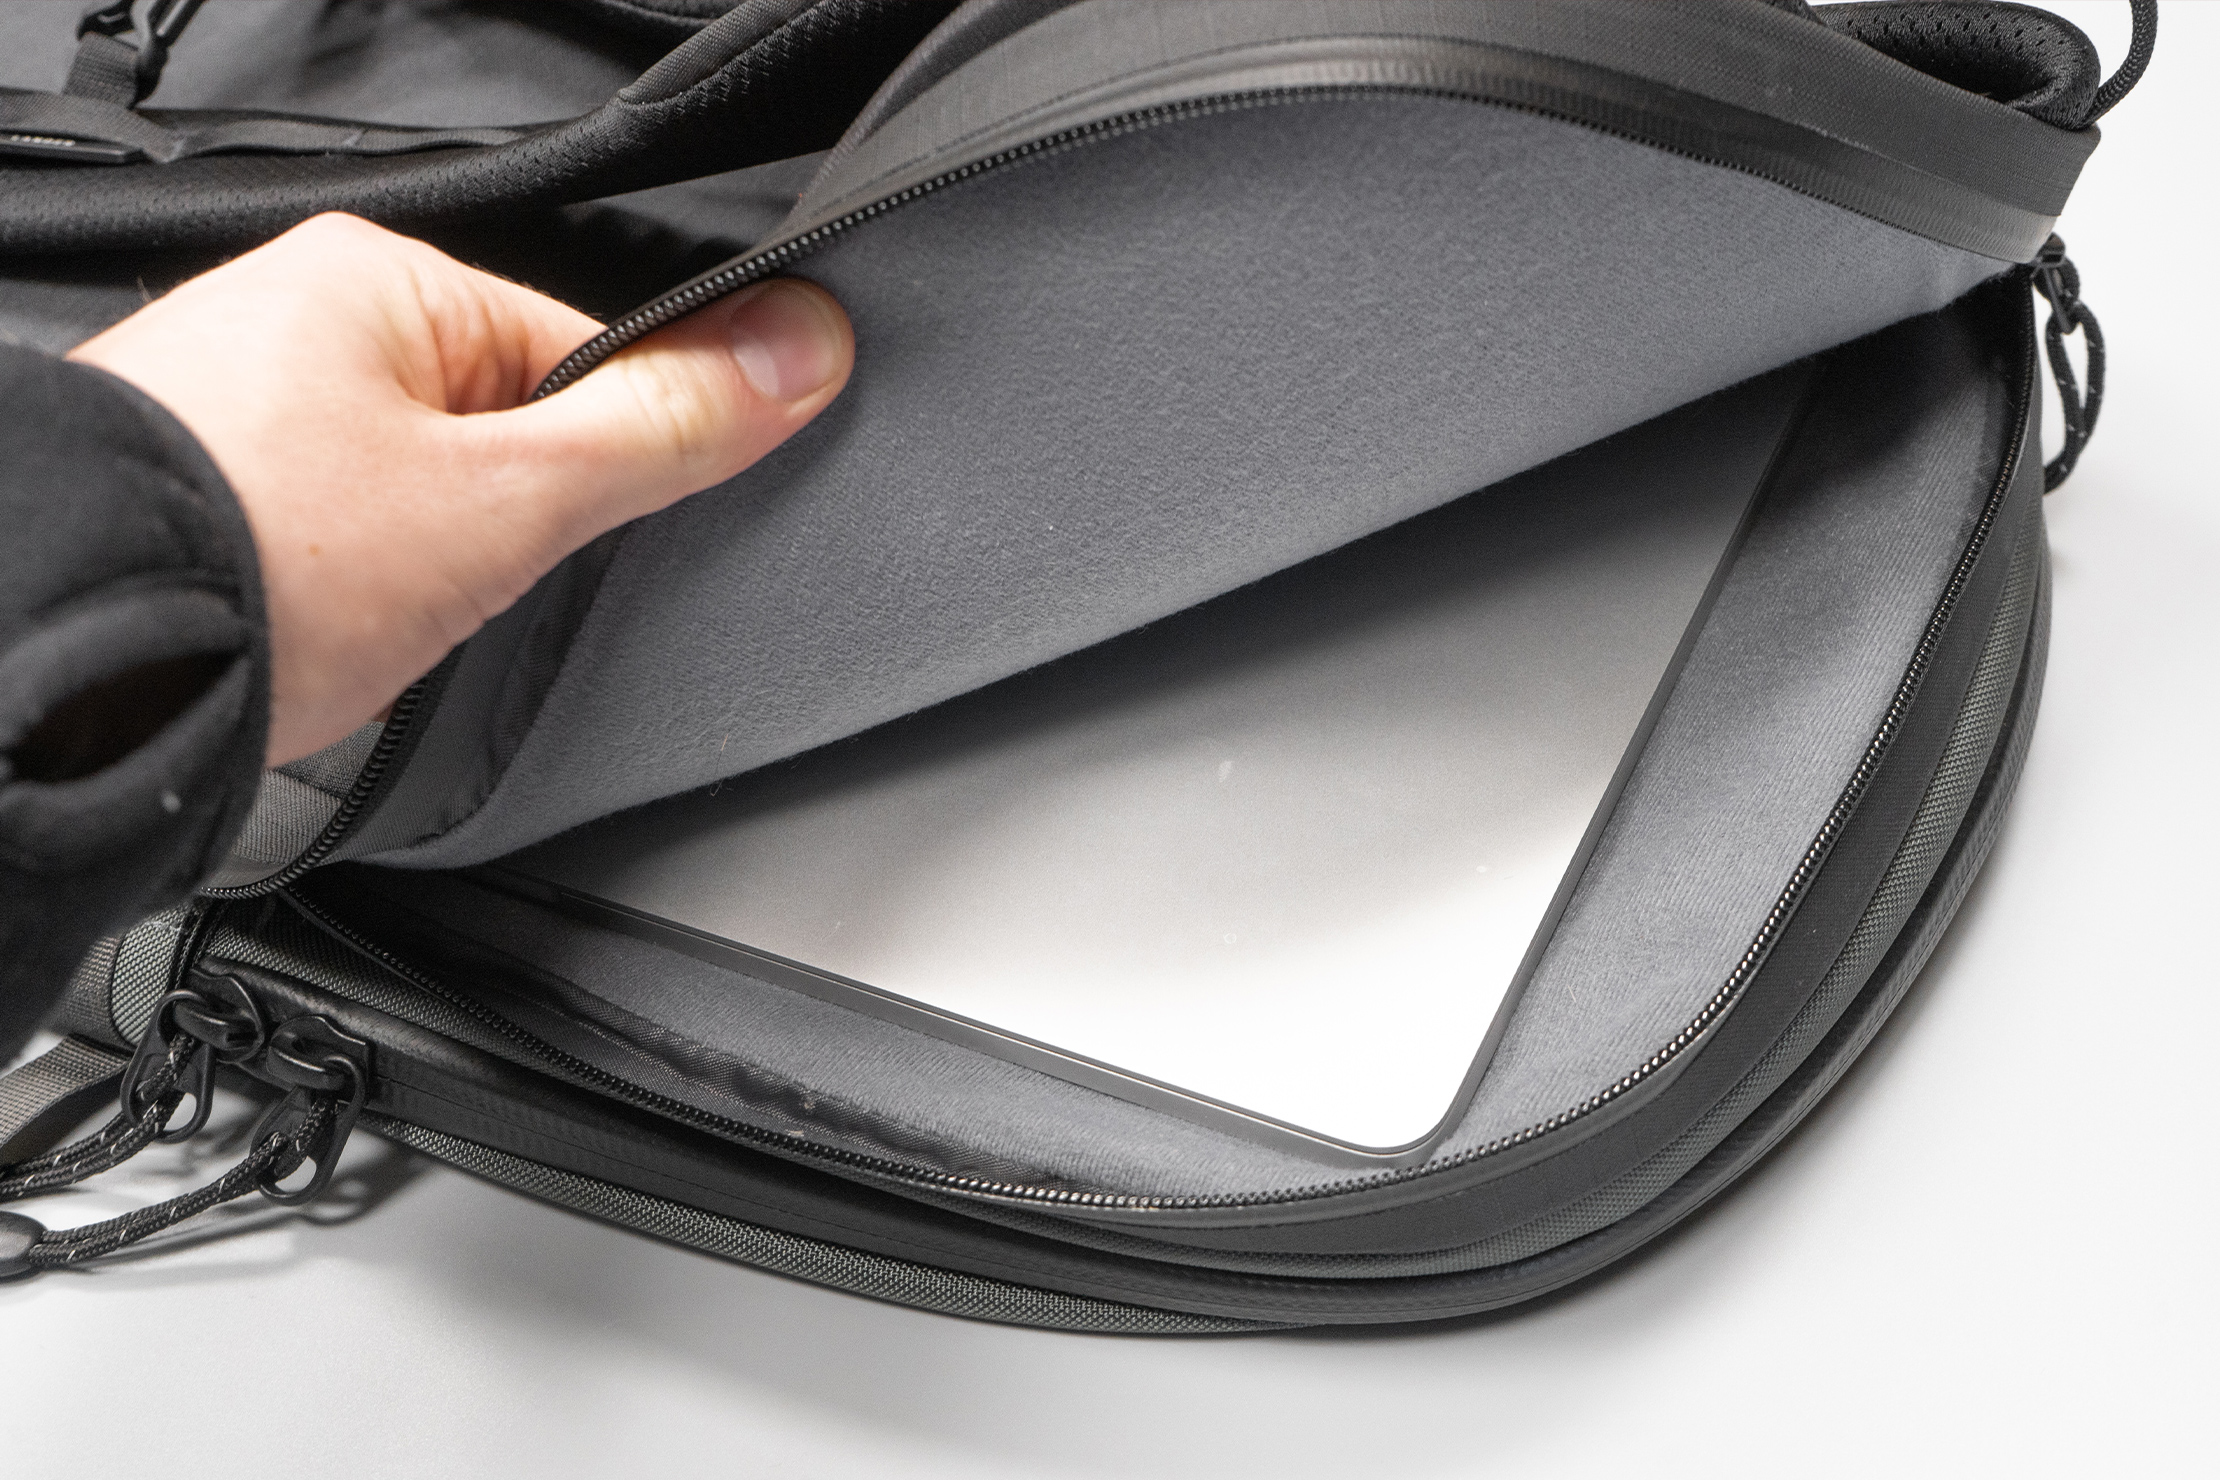 Lander Commuter Backpack 25L | The Crash Pad has good cushioning—even towards the front